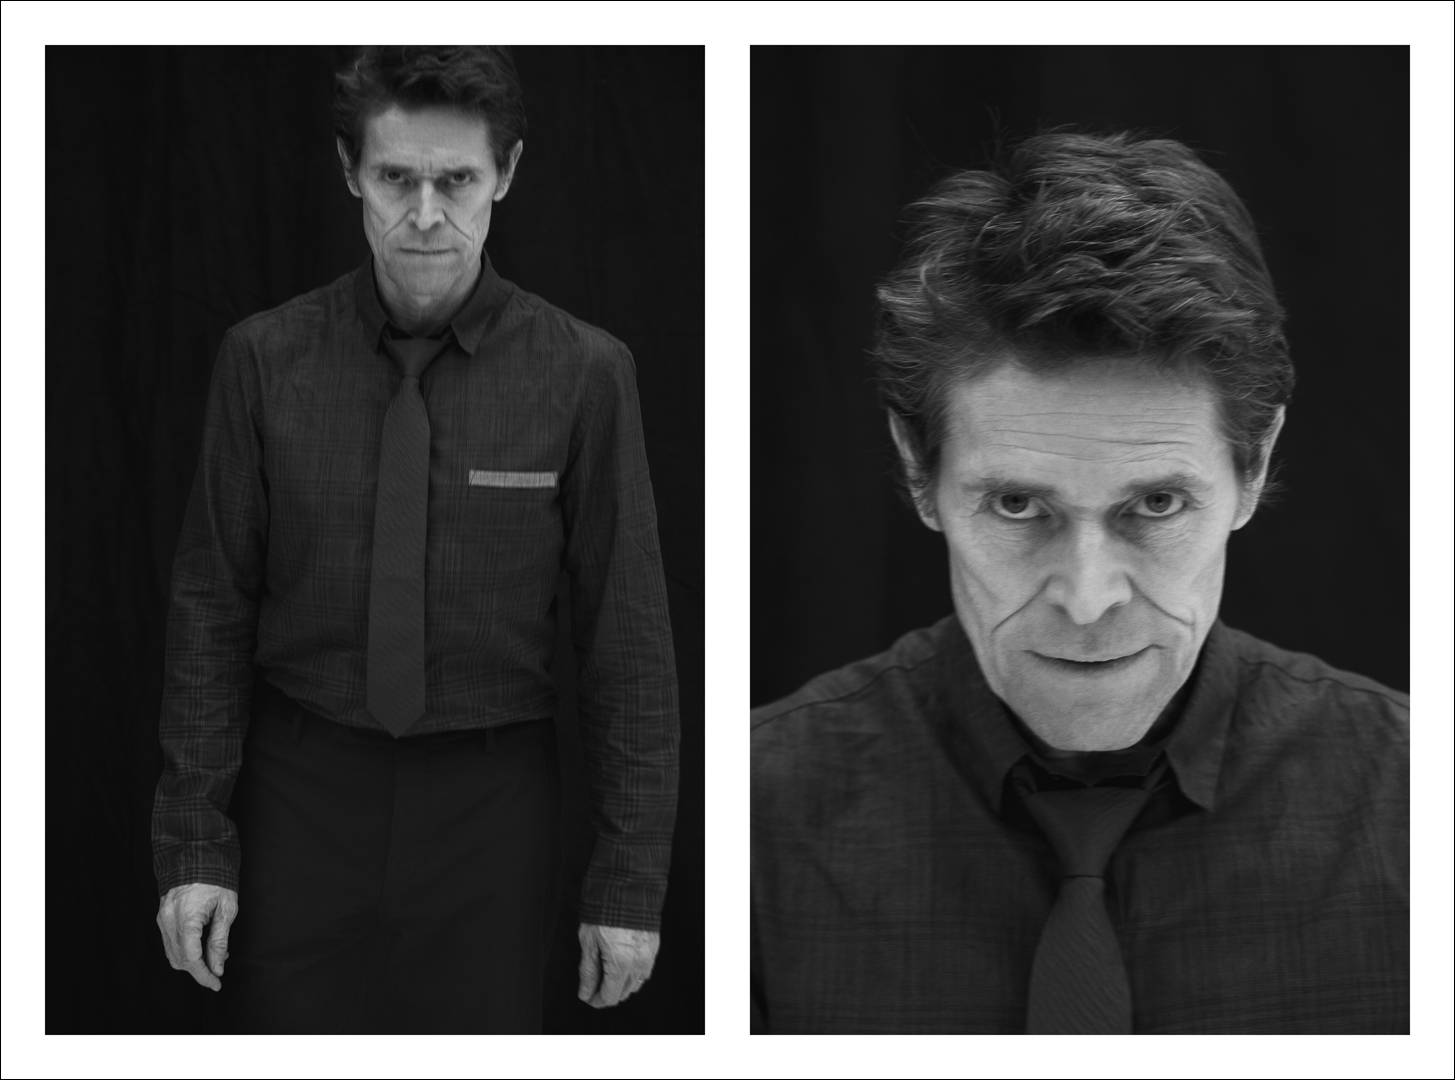 26_TIM_BARBER_WILLEM_DAFOE.jpg